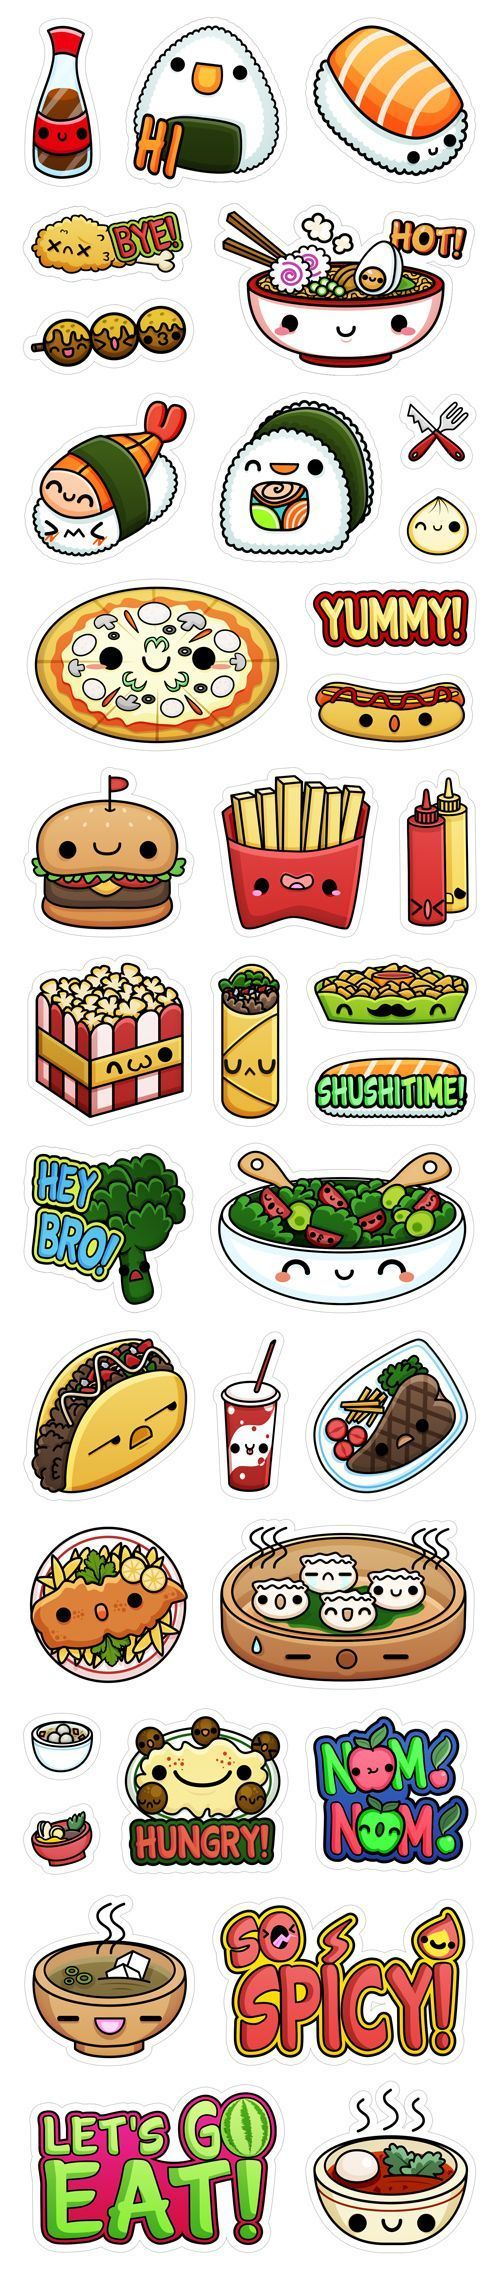 :) Viber's Kawaii Food Stickers by Squid&Pig, via Behance | Más en https://lomejordelaweb.es/